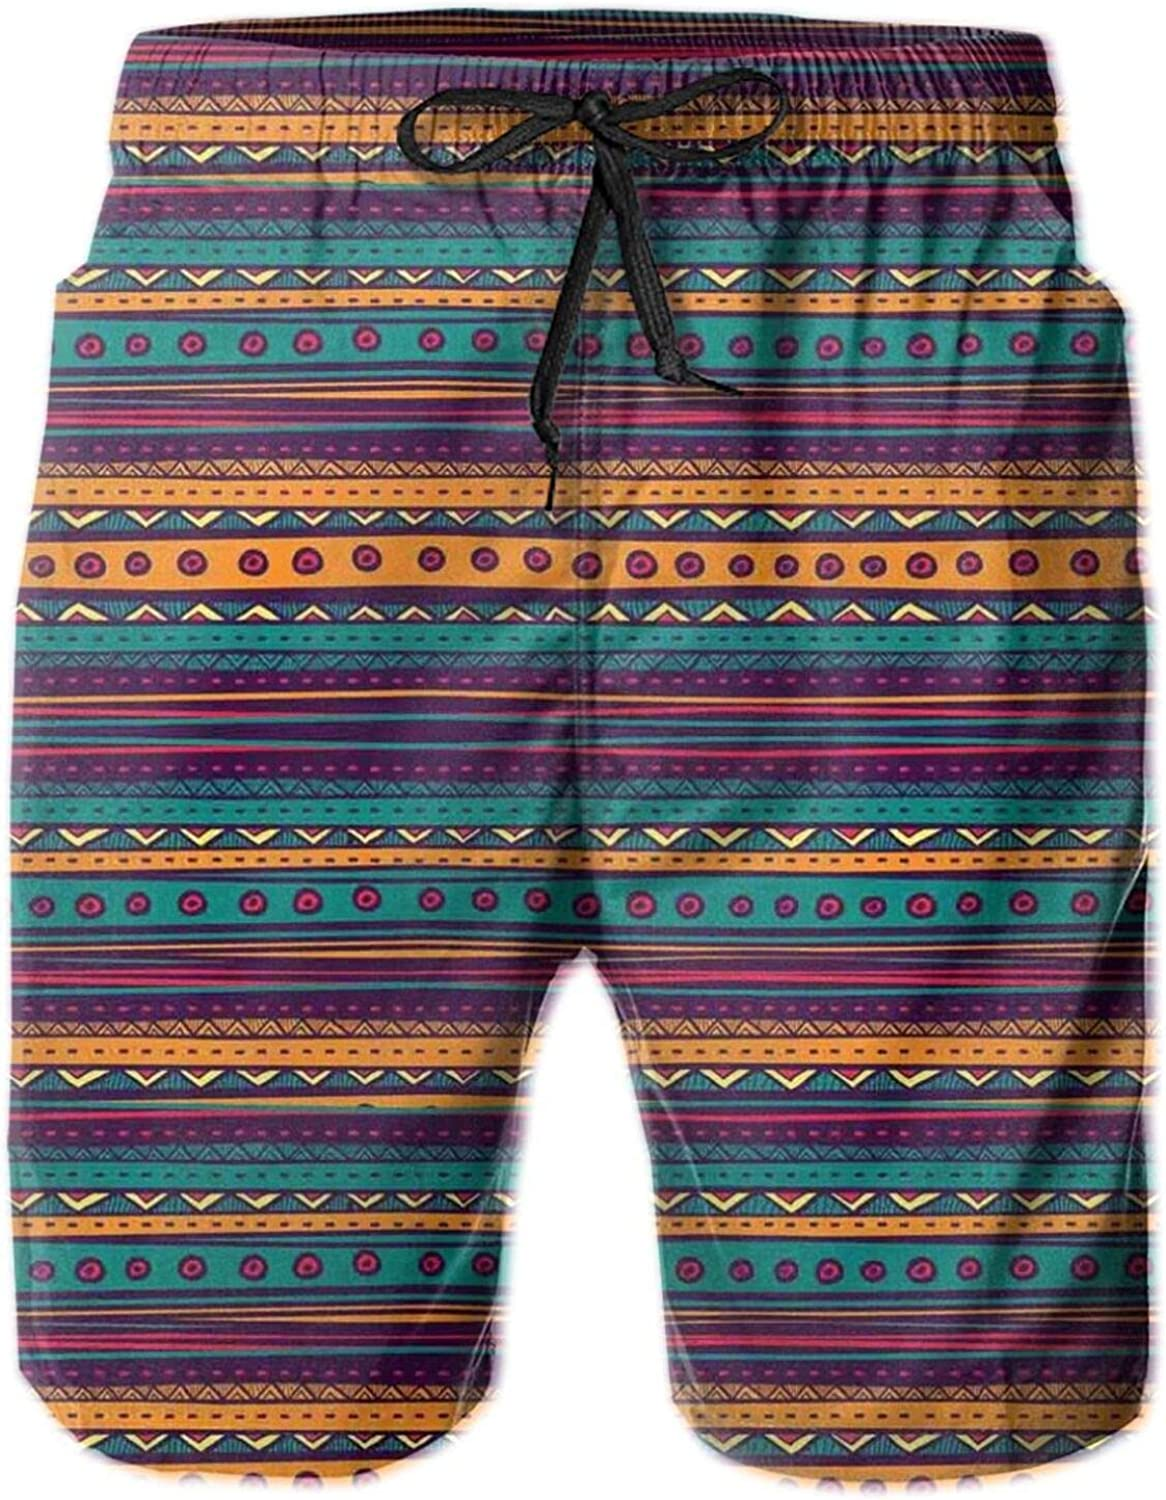 Striped Retro Aztec Pattern with Rich Mexican Ethnic Color Folkloric Print Swimming Trunks for Men Beach Shorts Casual Style,XL